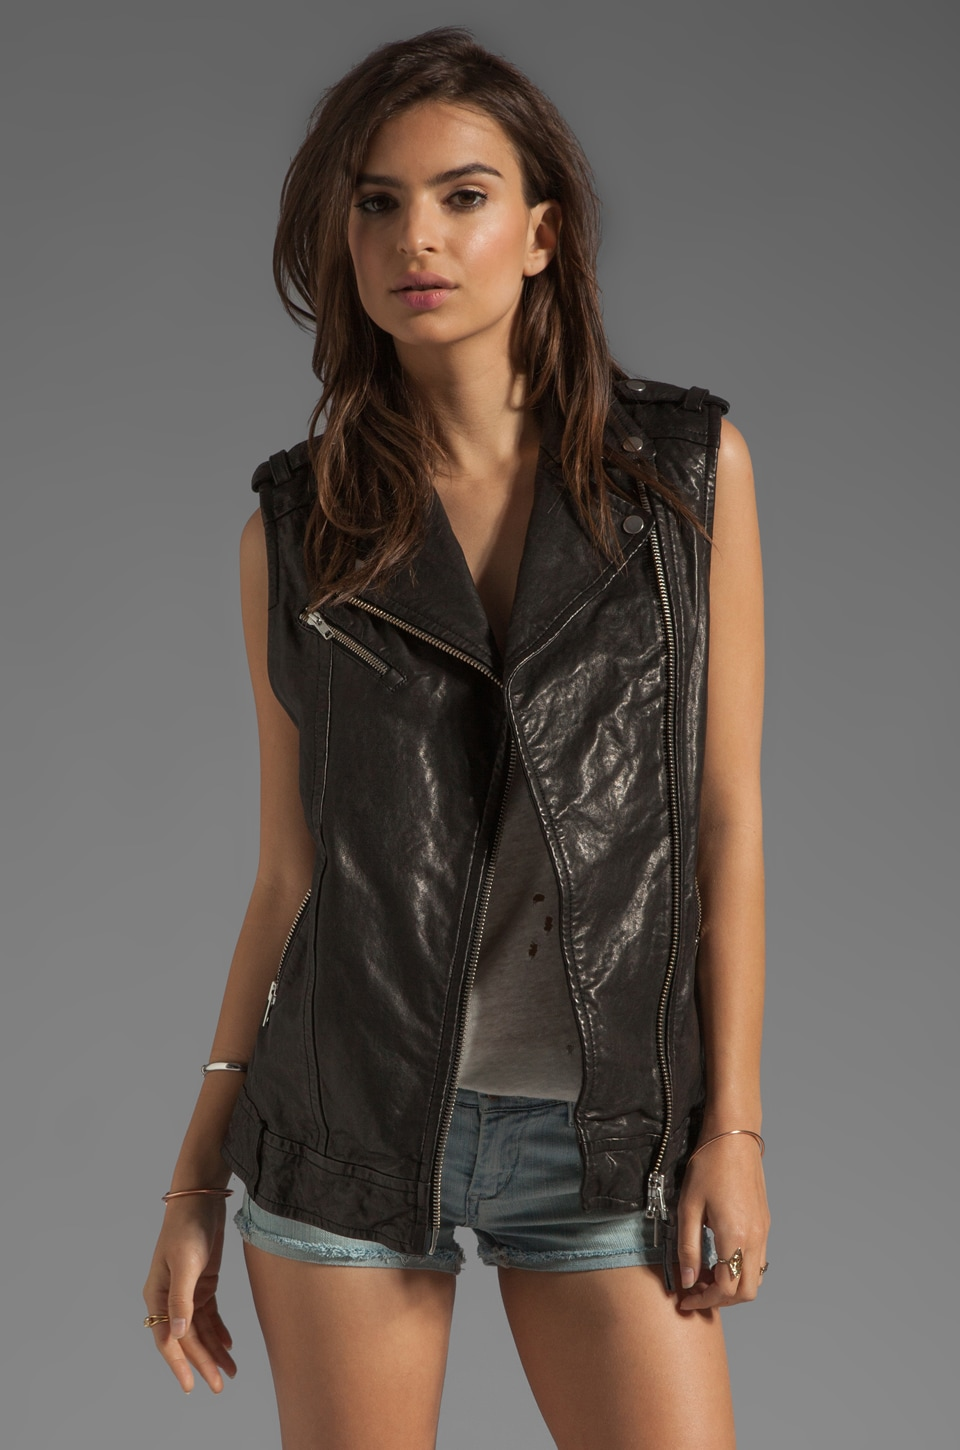 Mackage Frederica Distressed Leather Vest in Black